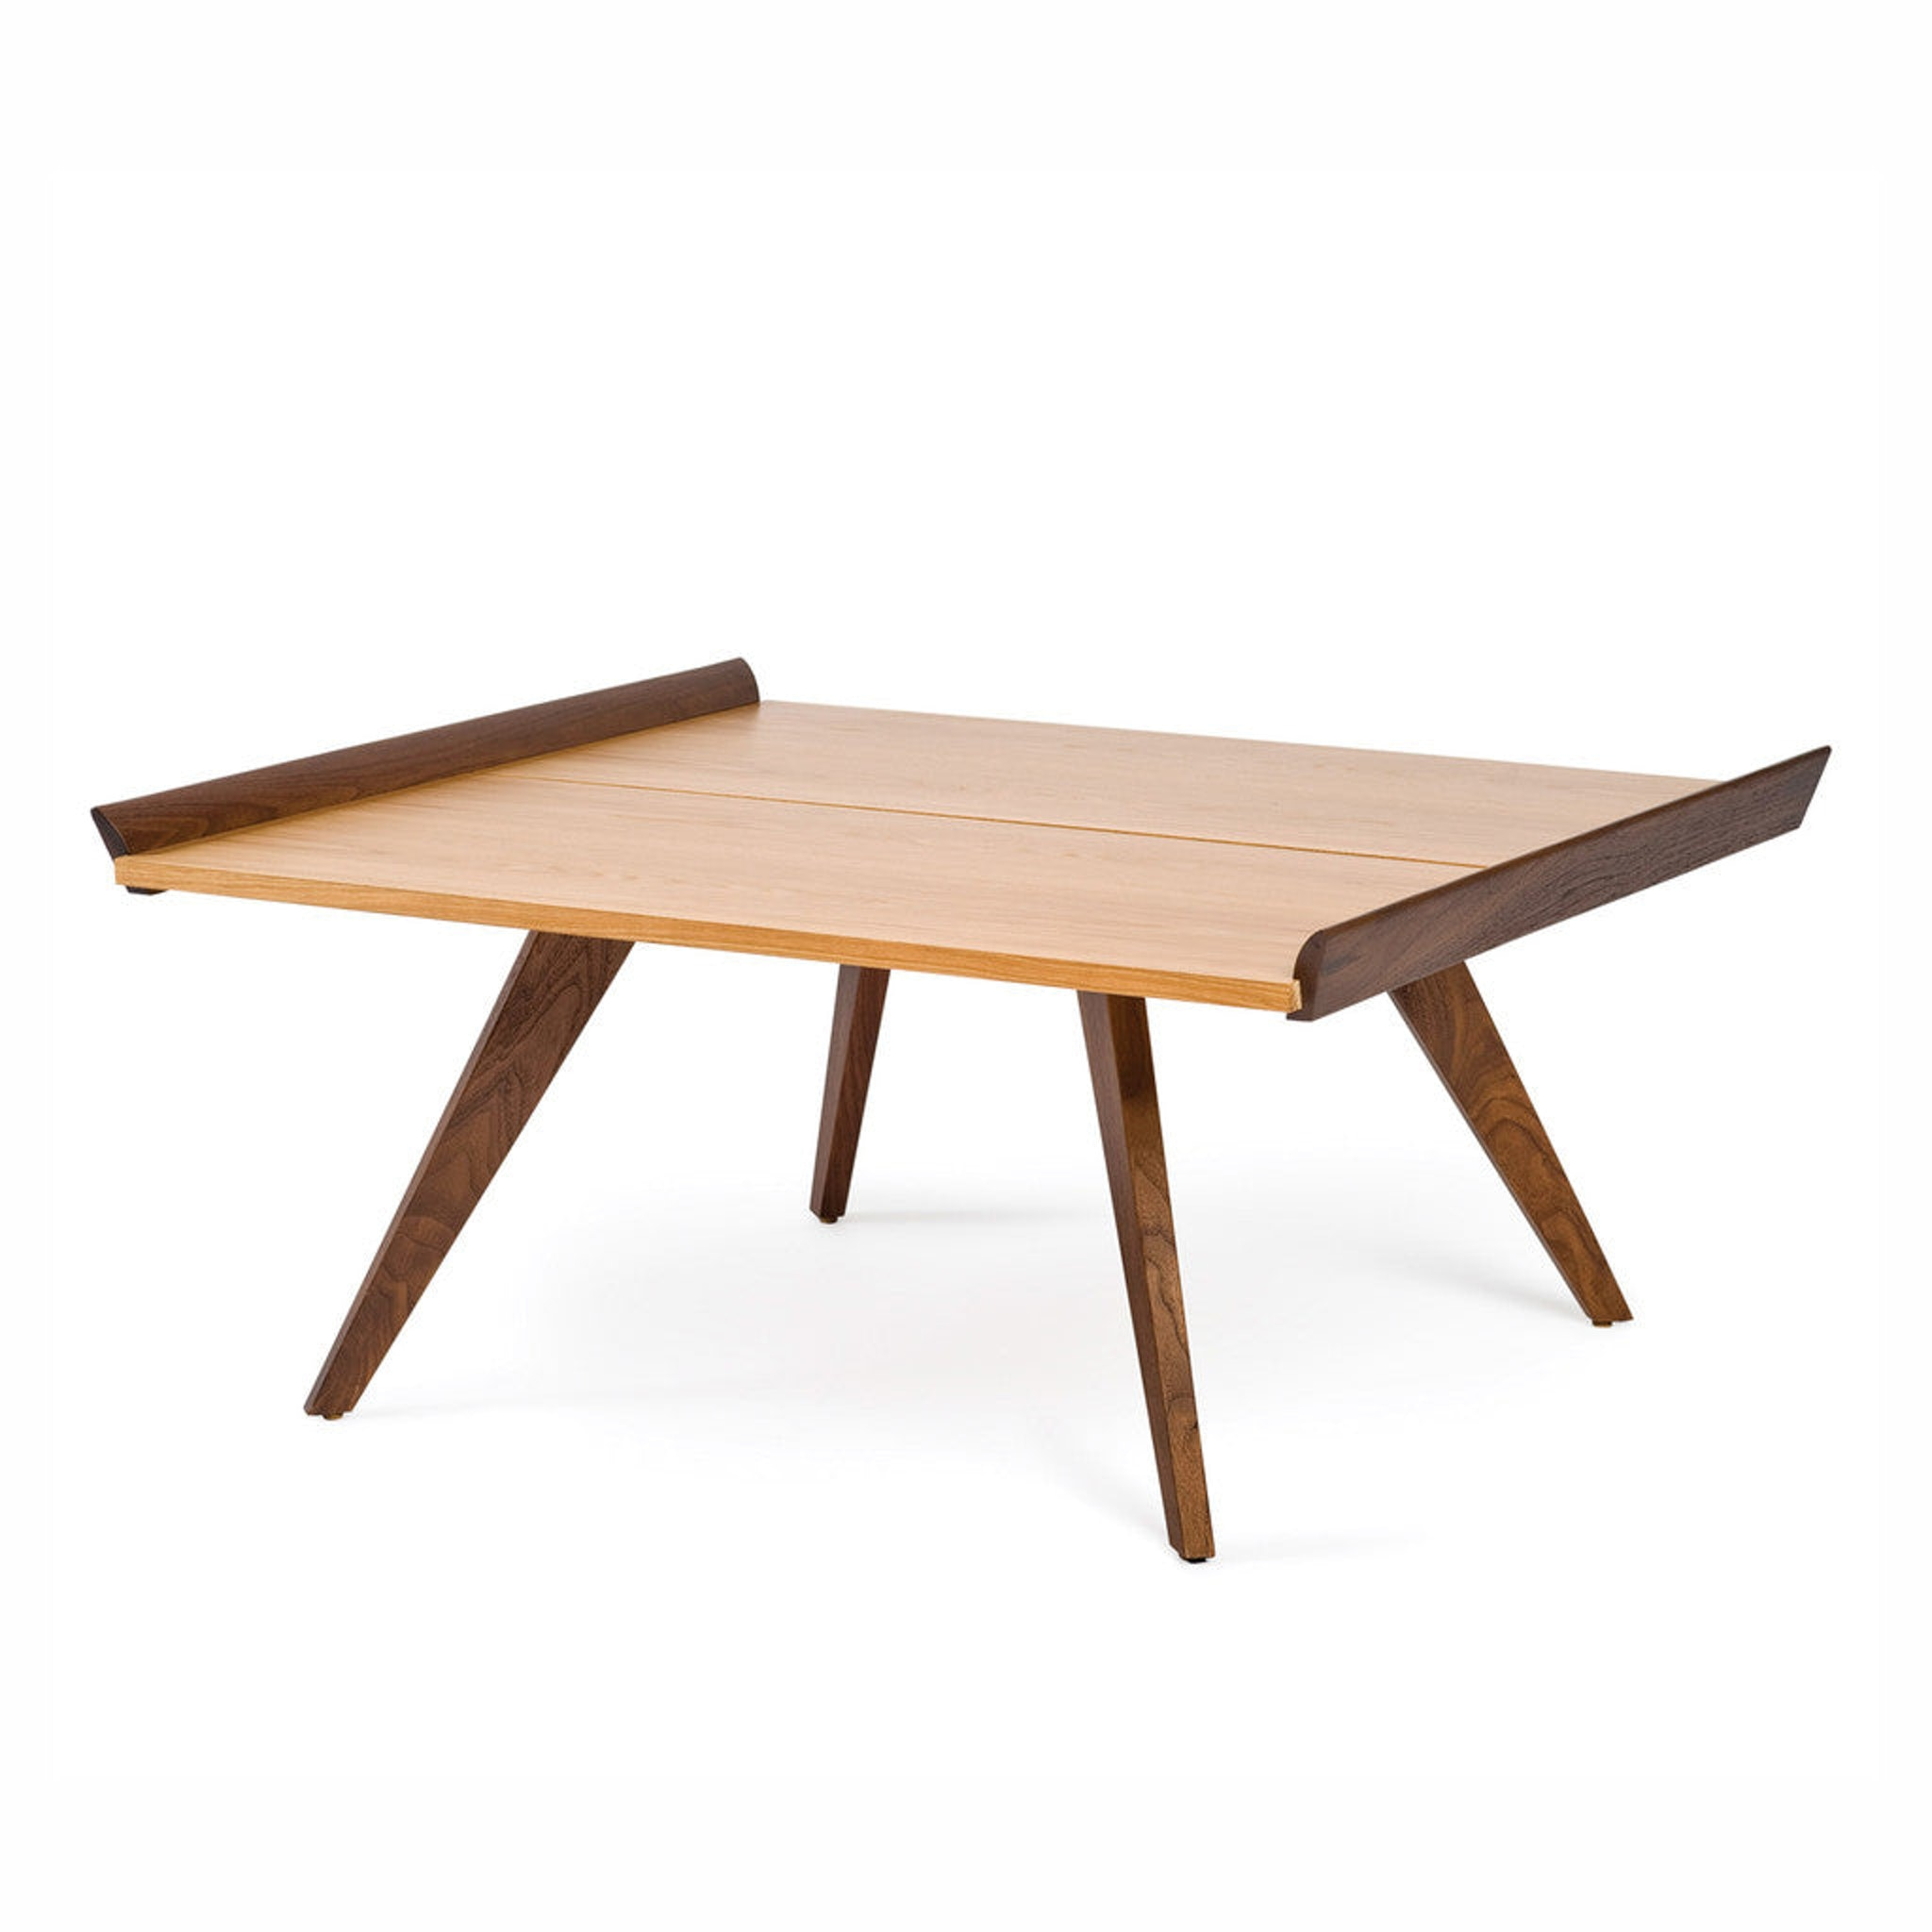 Splay-Leg Table by Knoll